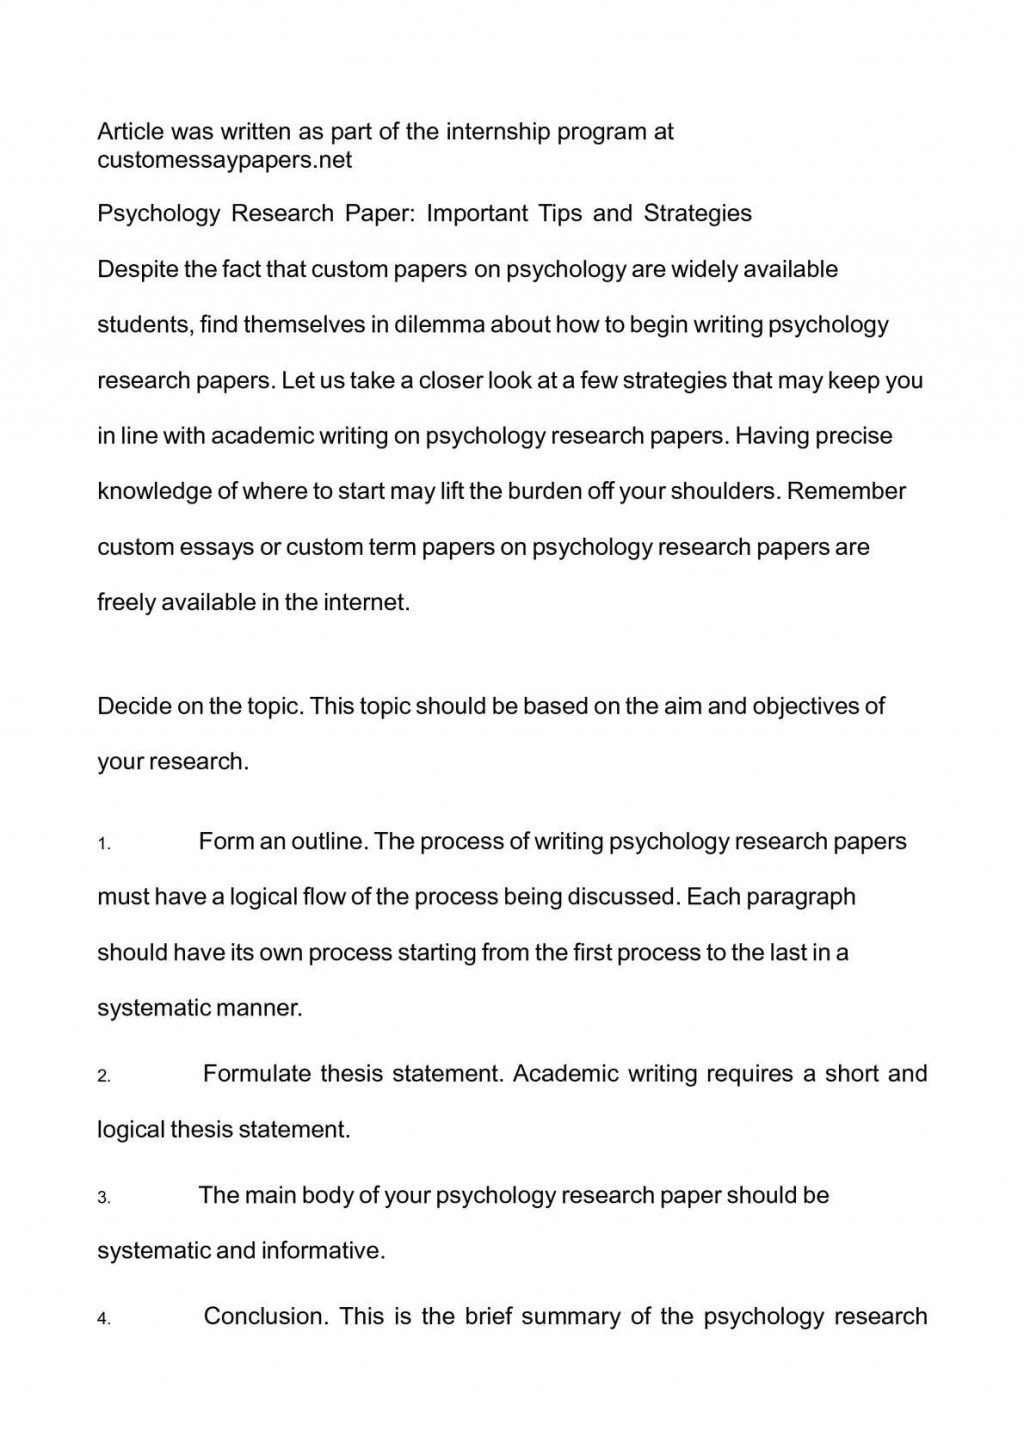 ideas for a psychology research paper